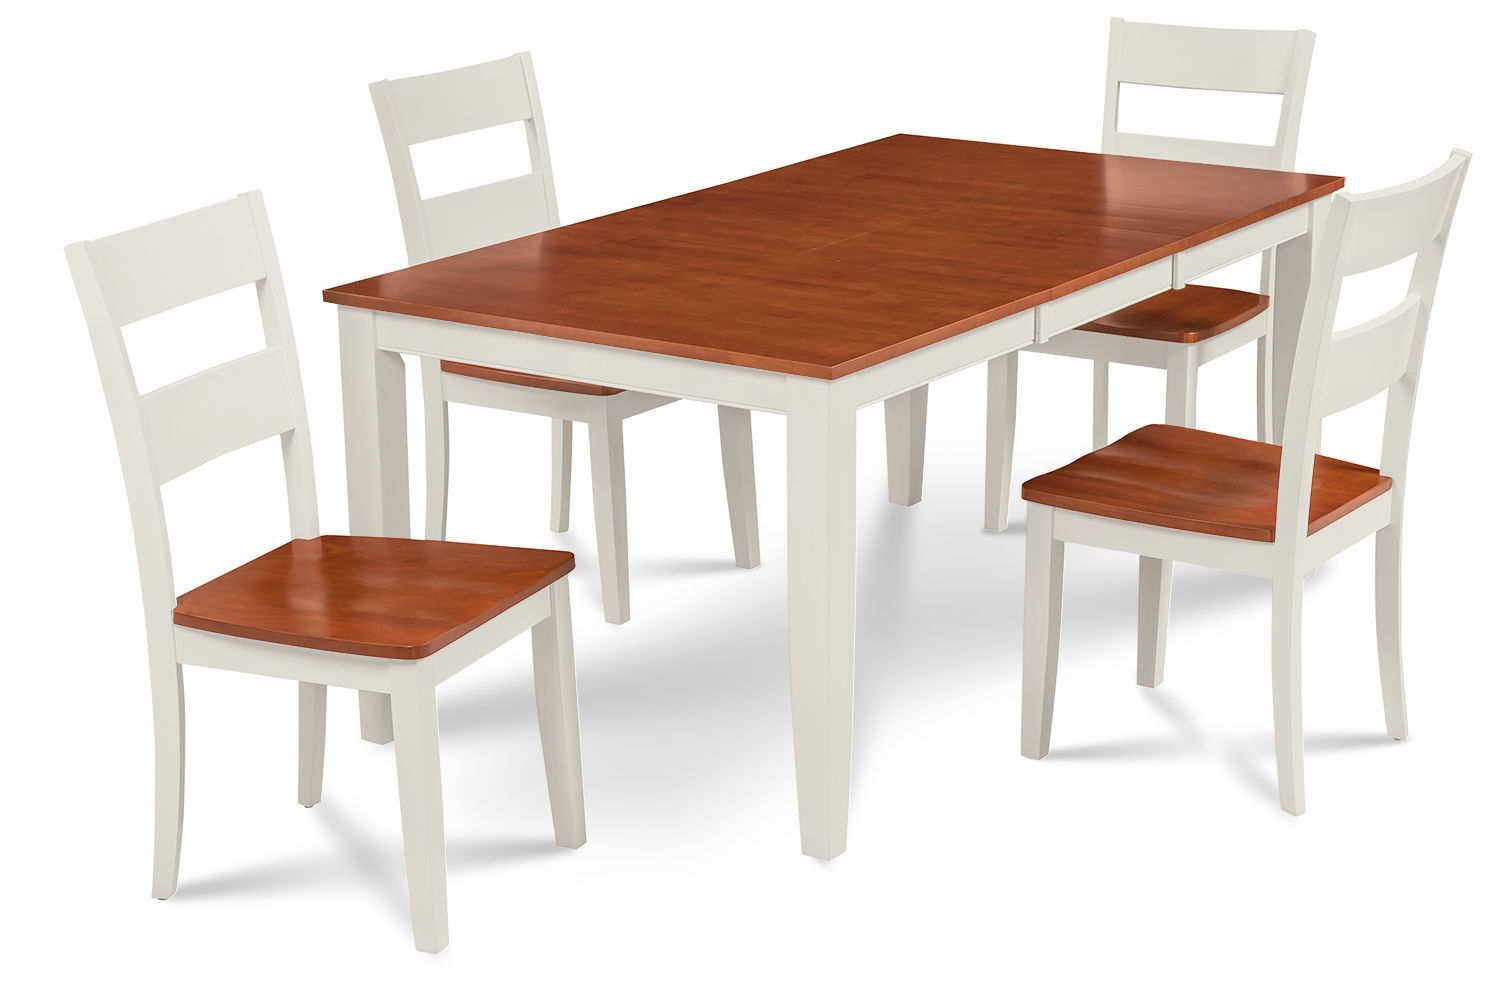 SUNDERLAND DINING ROOM TABLE SET WITH WOOD SEAT CHAIRS IN WHITE & CHERRY